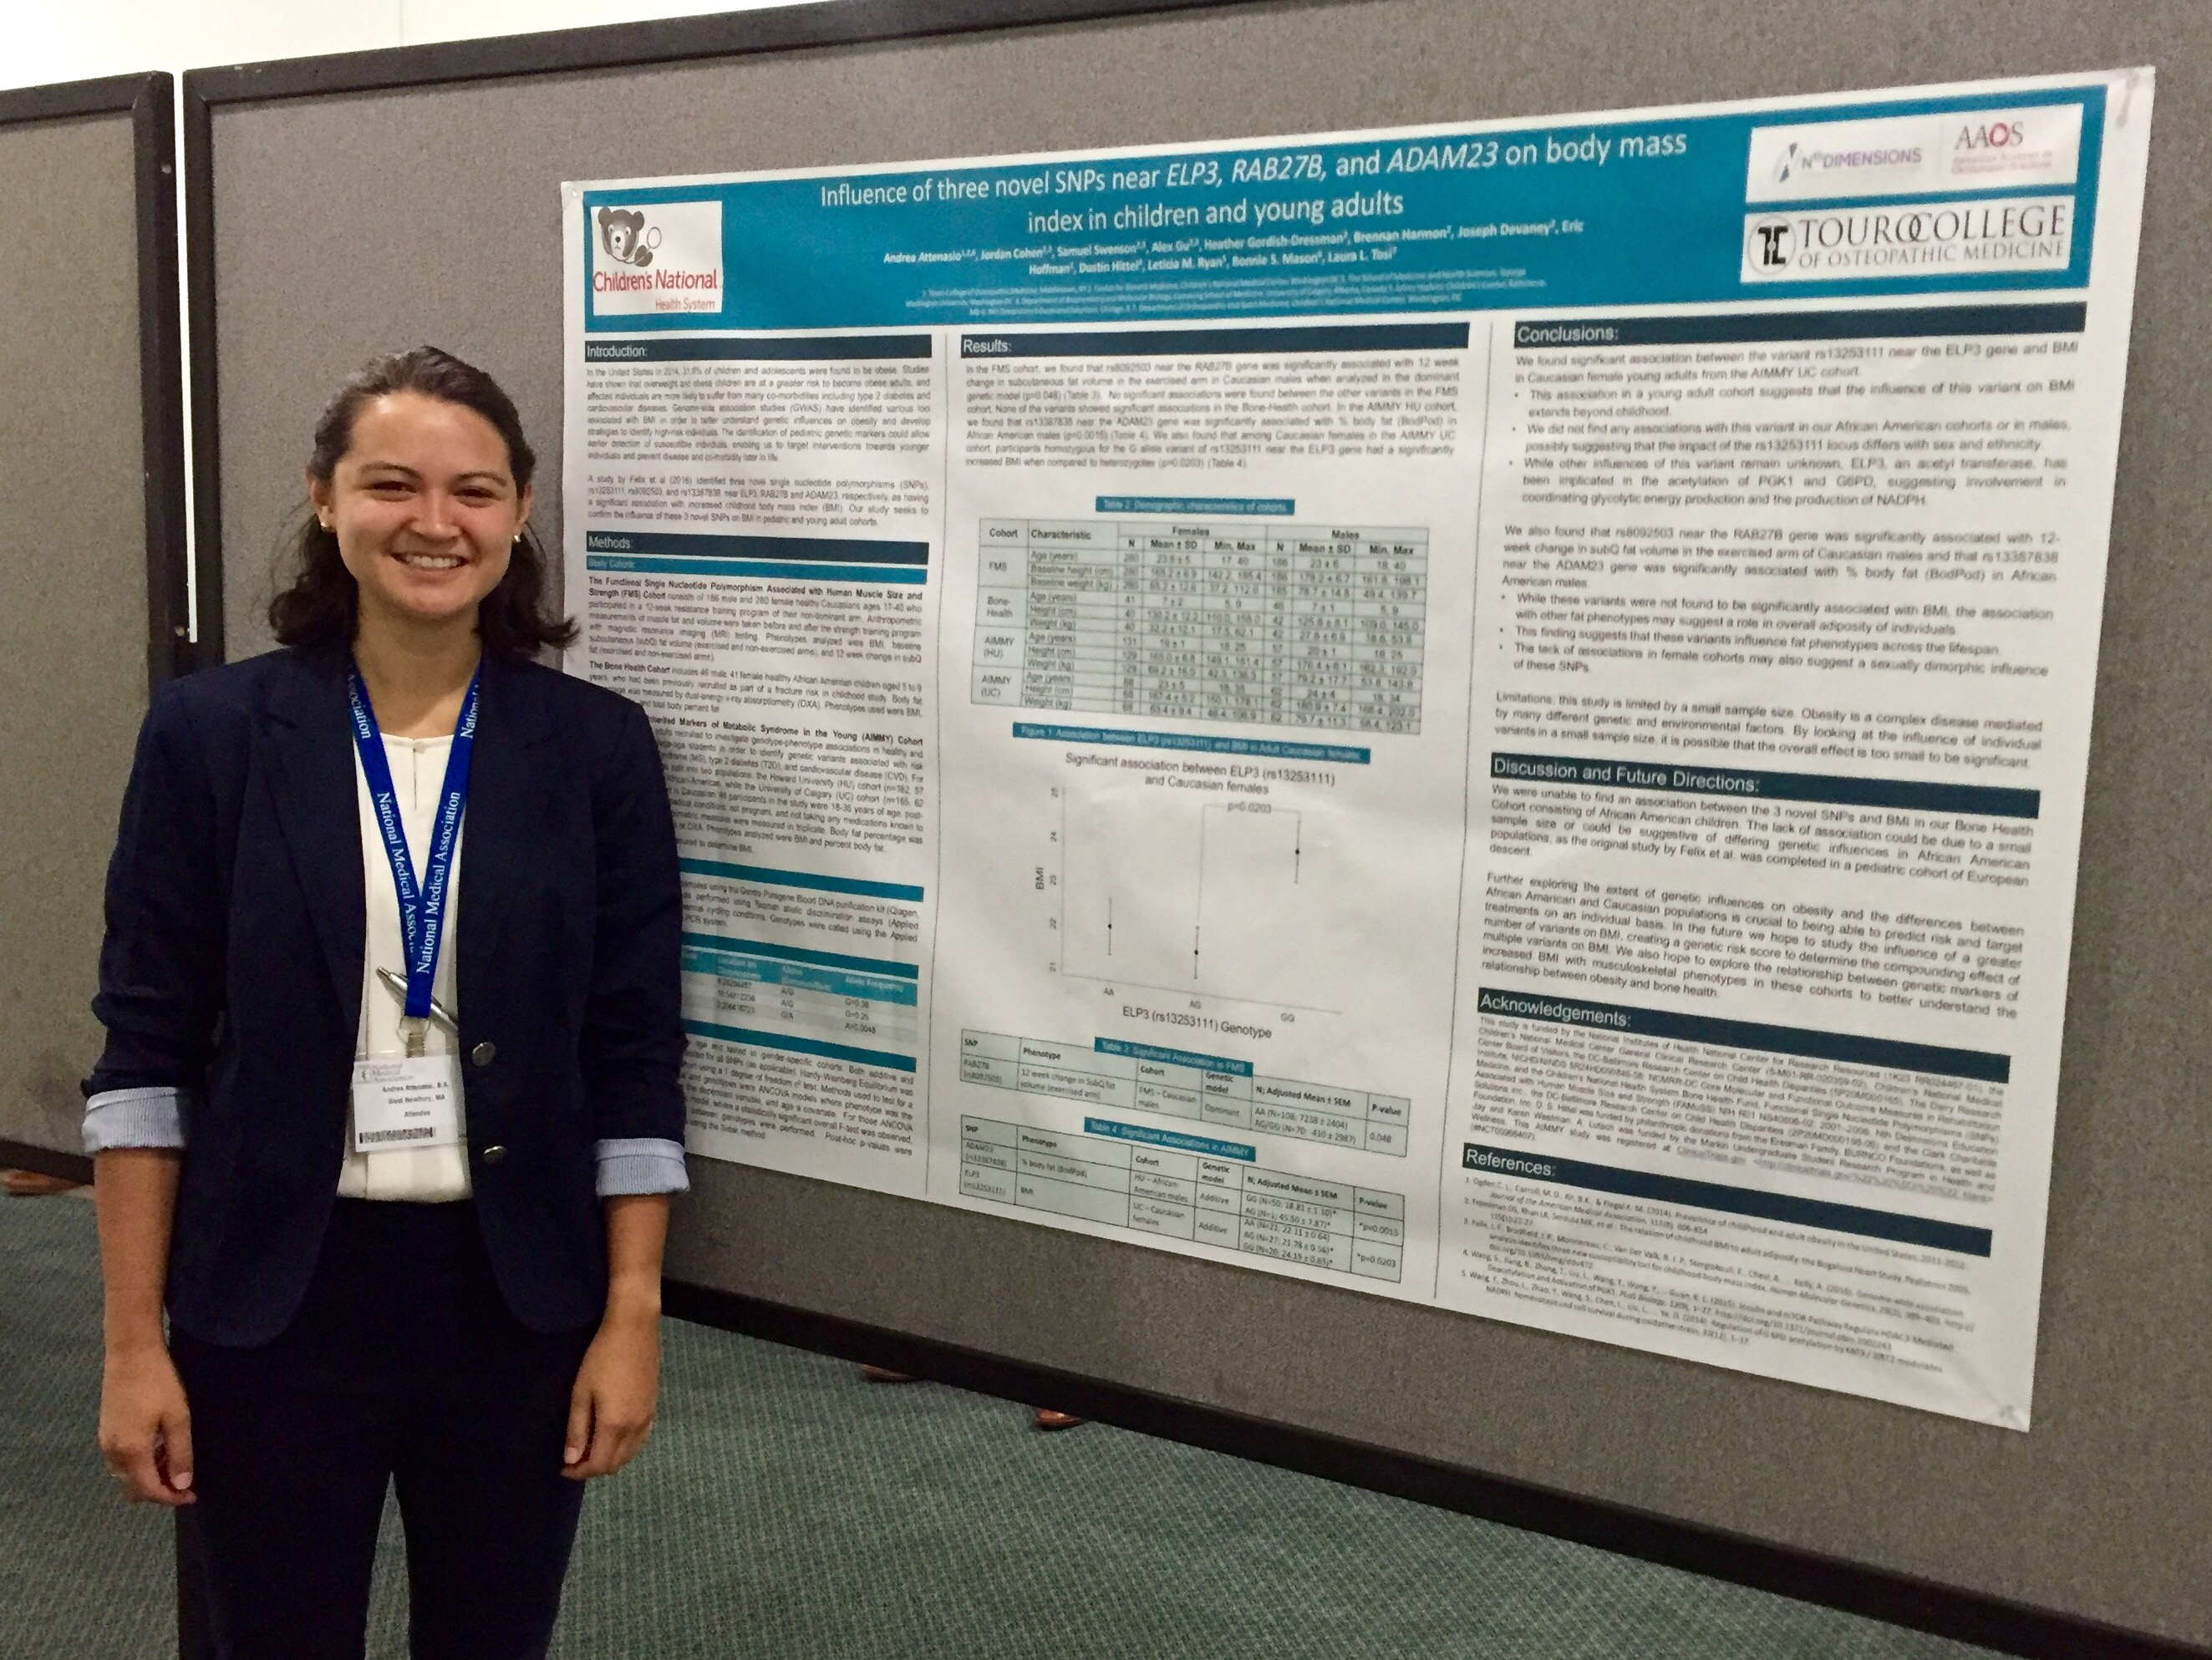 OMS II Middletown Campus student Andrea Attenasio spent her summer in Children's National Medical Center shadowing the head of the bone health department and researching genetic variances.